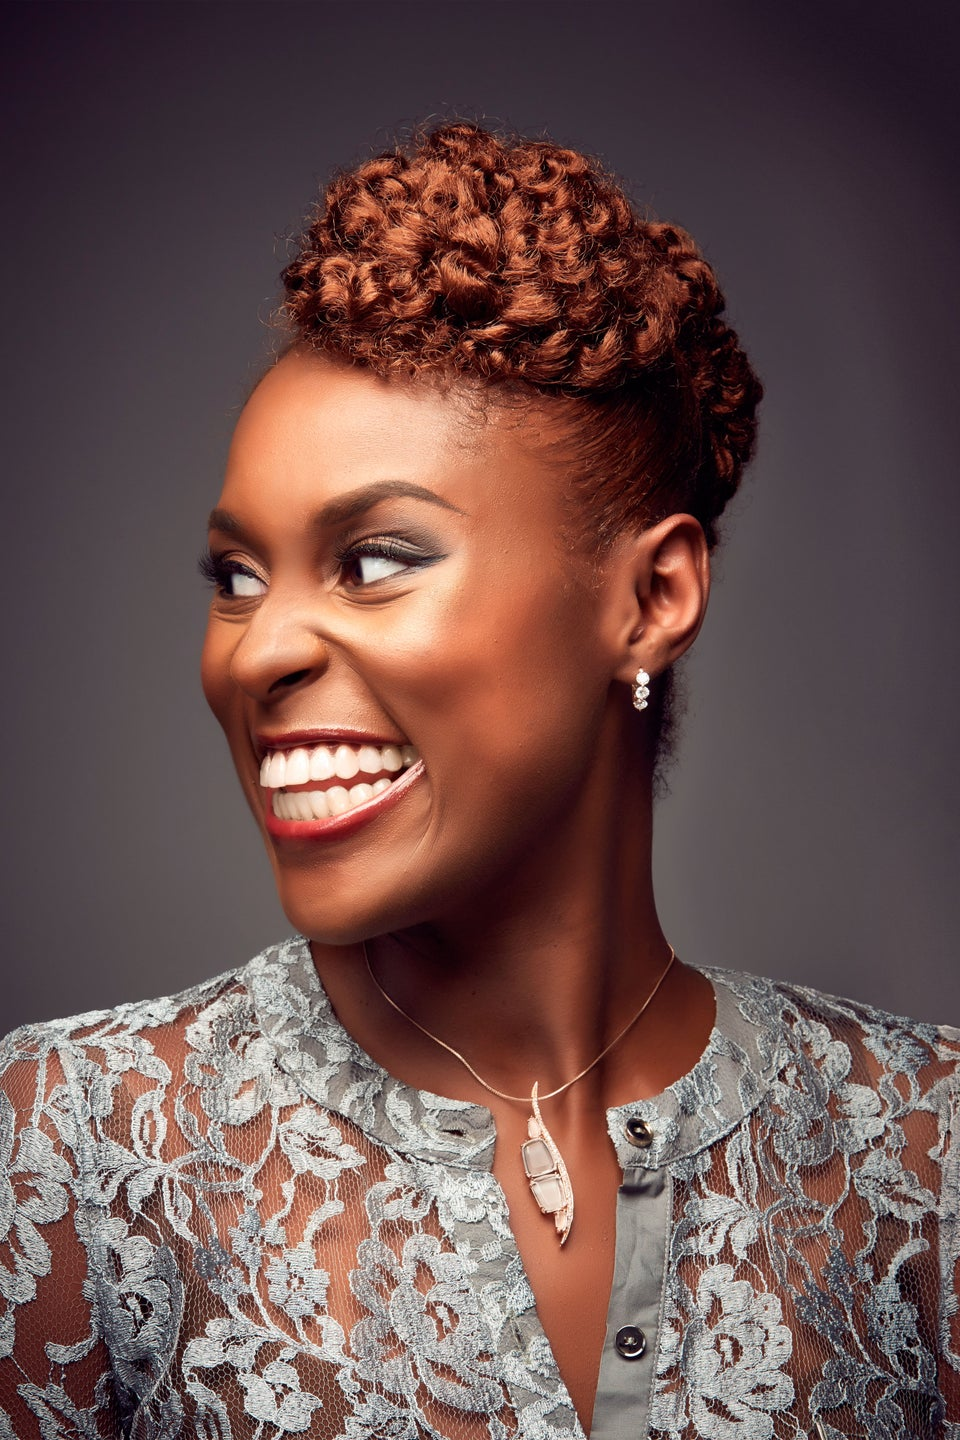 'A SIP:' Issa Rae GetsThe Tea From All Her Hollywood Friends In This New YouTube Series